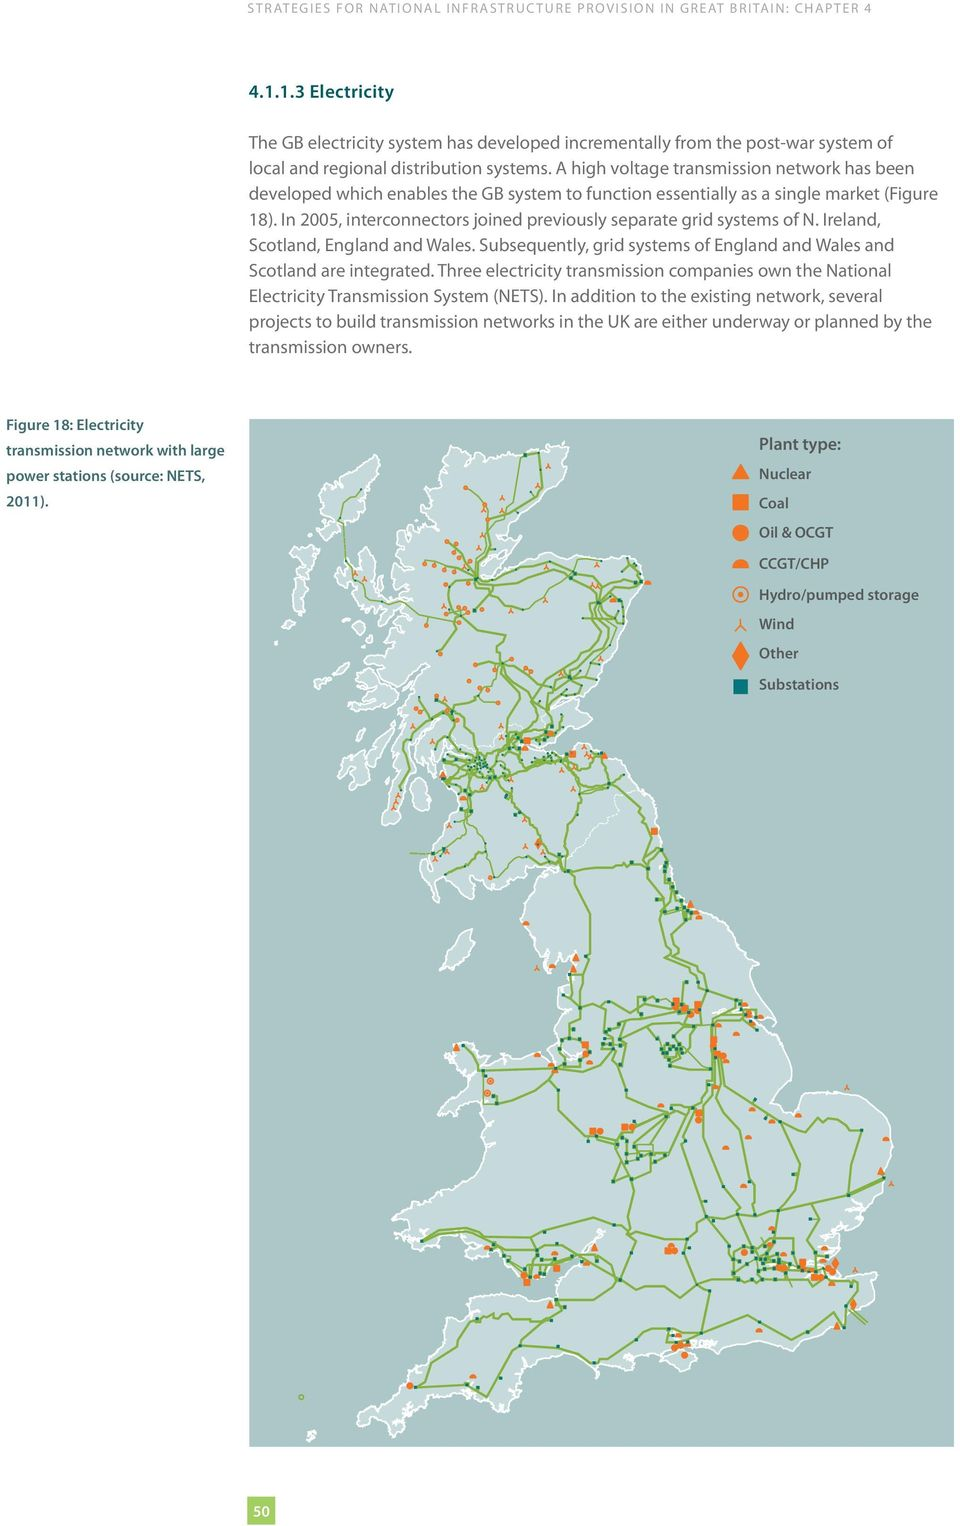 In 2005, interconnectors joined previously separate grid systems of N. Ireland, Scotland, England and Wales. Subsequently, grid systems of England and Wales and Scotland are integrated.